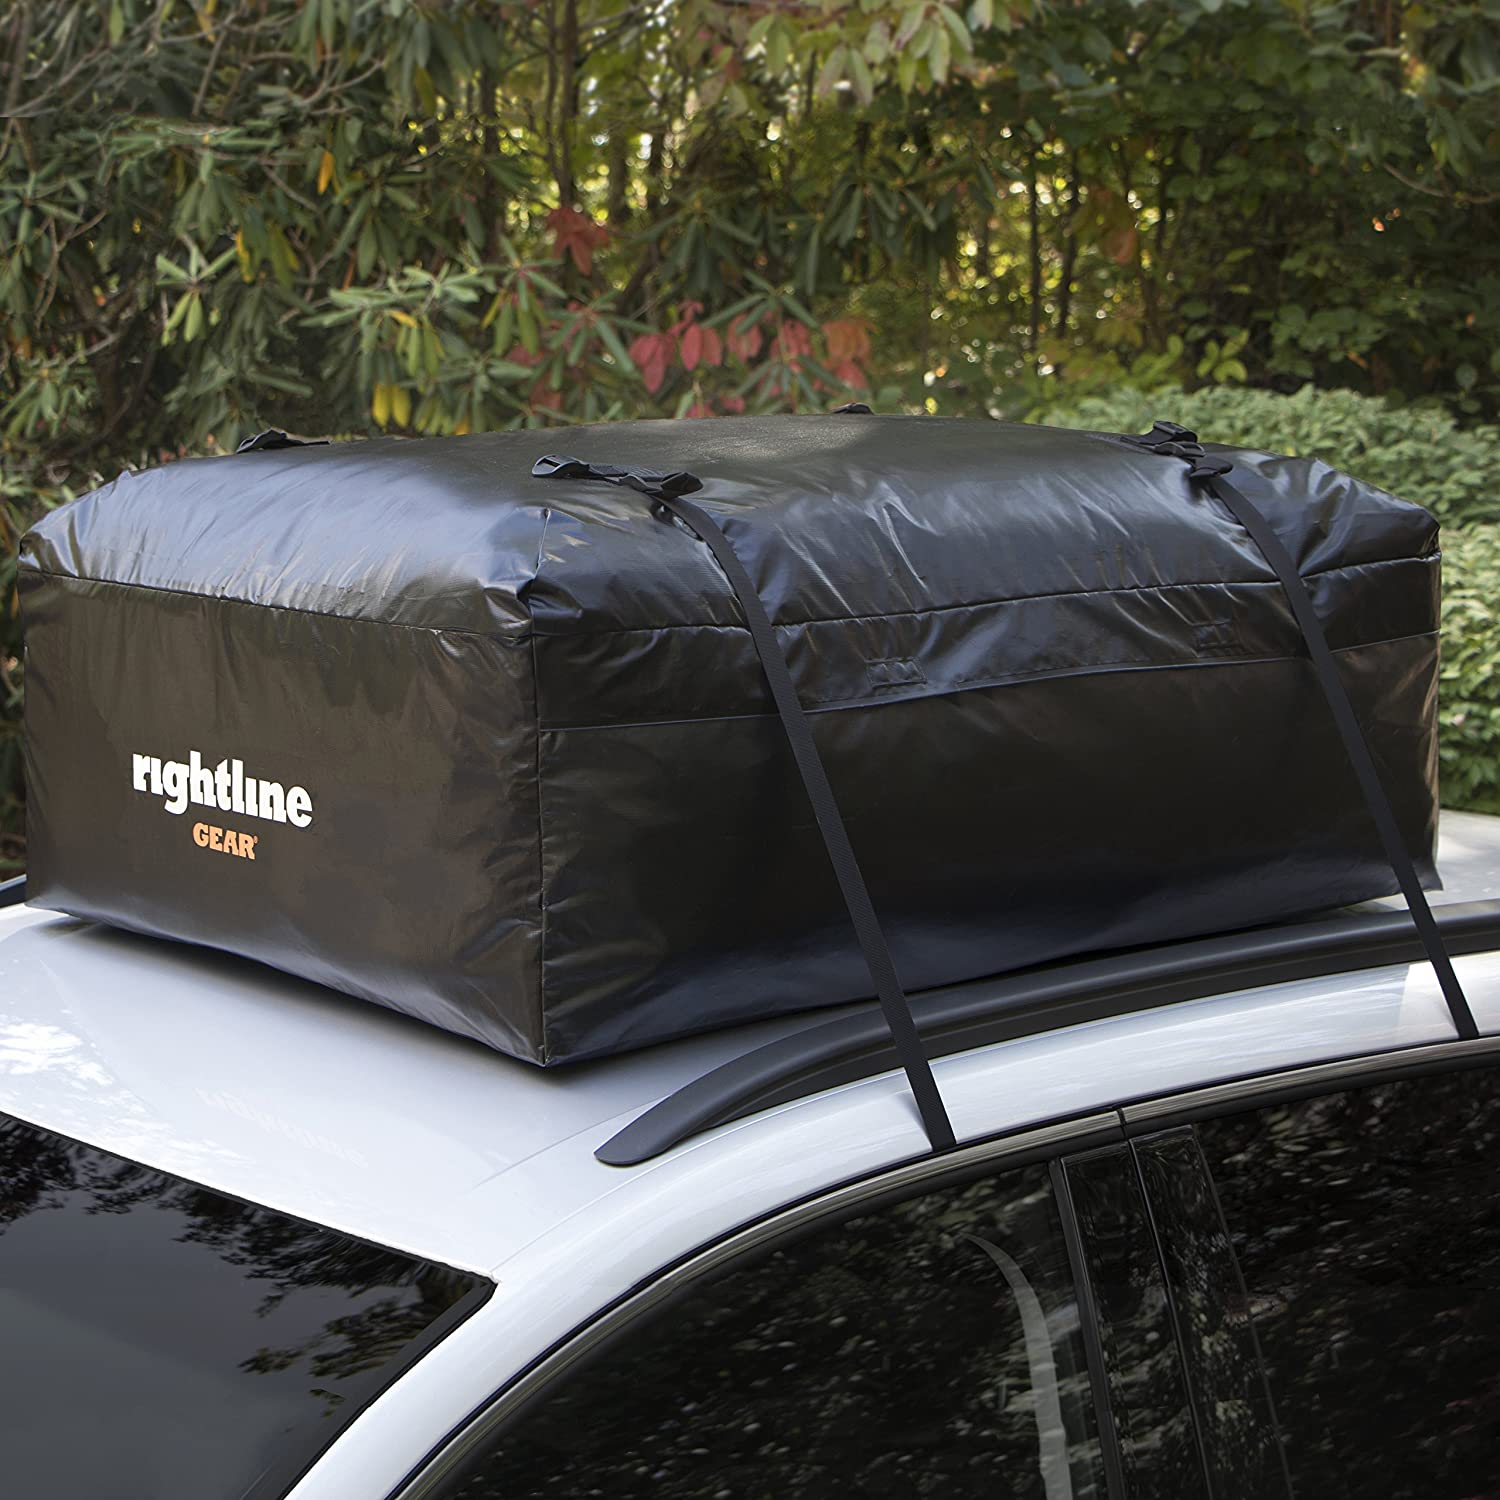 Weatherproof Rightline Gear Ace Jr Top Carrier 9 cu ft Sized for Compact Cars Attaches With or Without Roof Rack 100A50